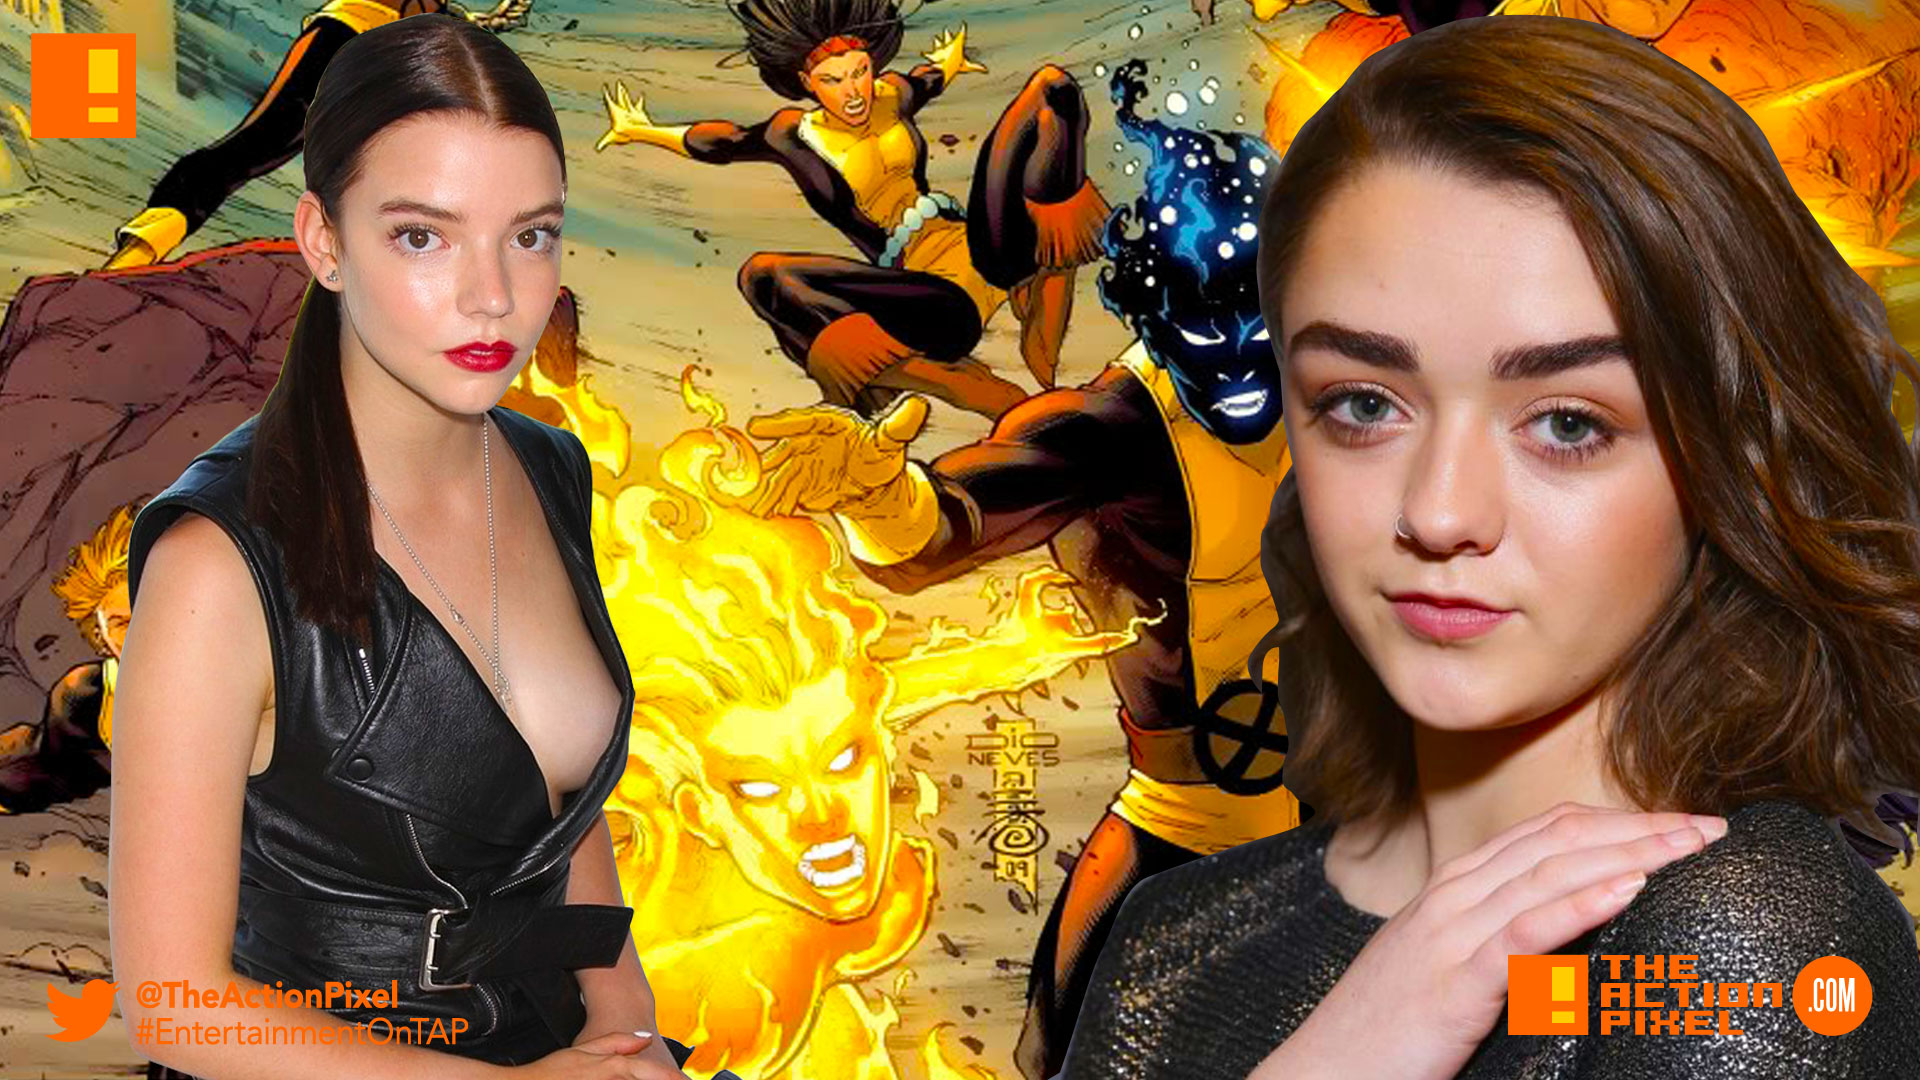 magik, x-men, xmen, new mutants, x-men: new mutants, fox, marvel, entertainment on tap, Anya Taylor-Joy, maisie williams,wolfsbane, marvel comics, entertainment on tap, the action pixel